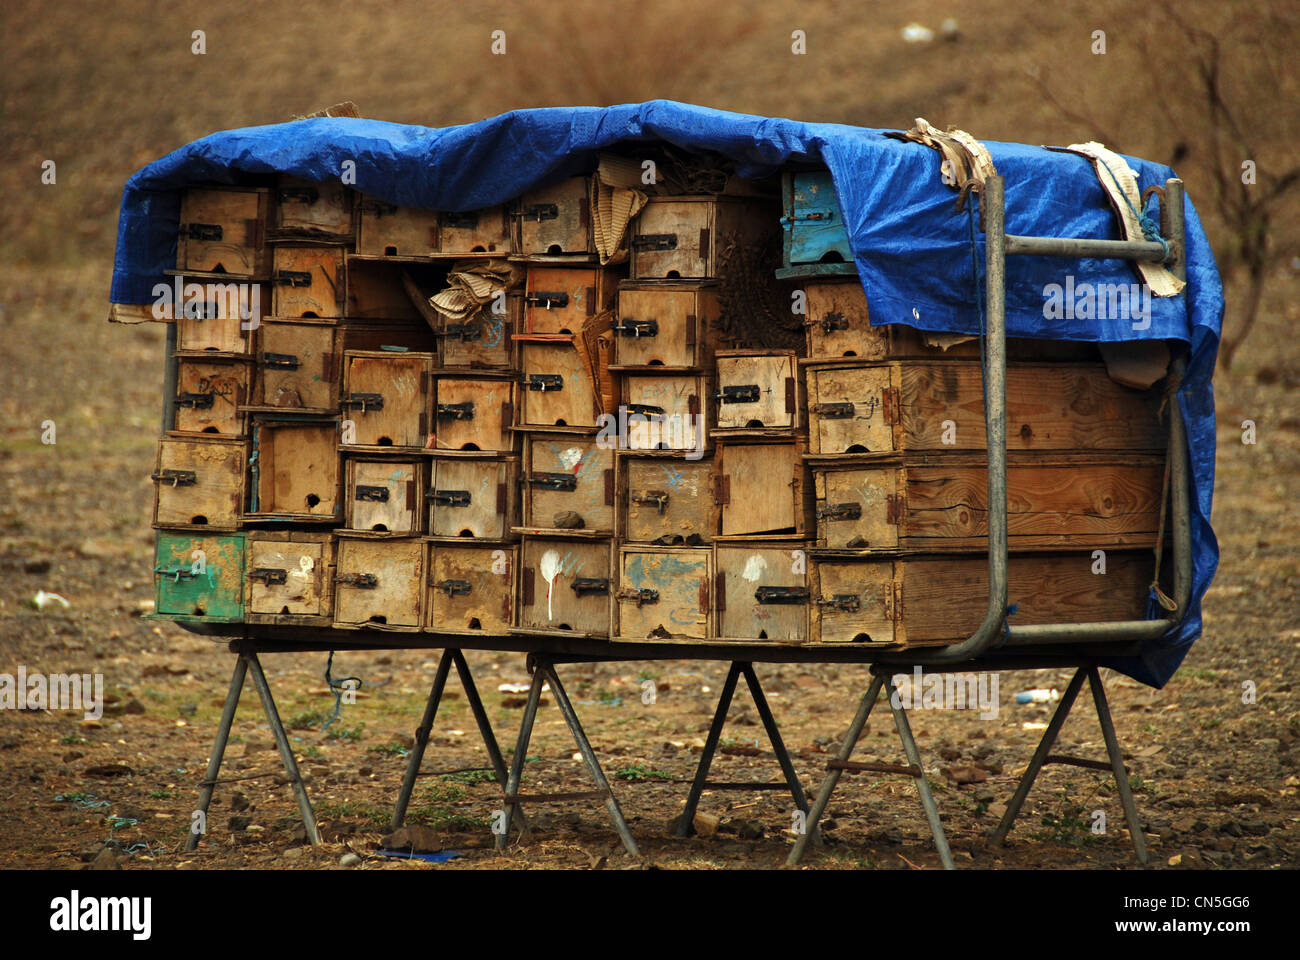 Yemen, inland, local handmade beehives in the countryside of Yemen near Sanaa, consisting of small wooden boxes, - Stock Image